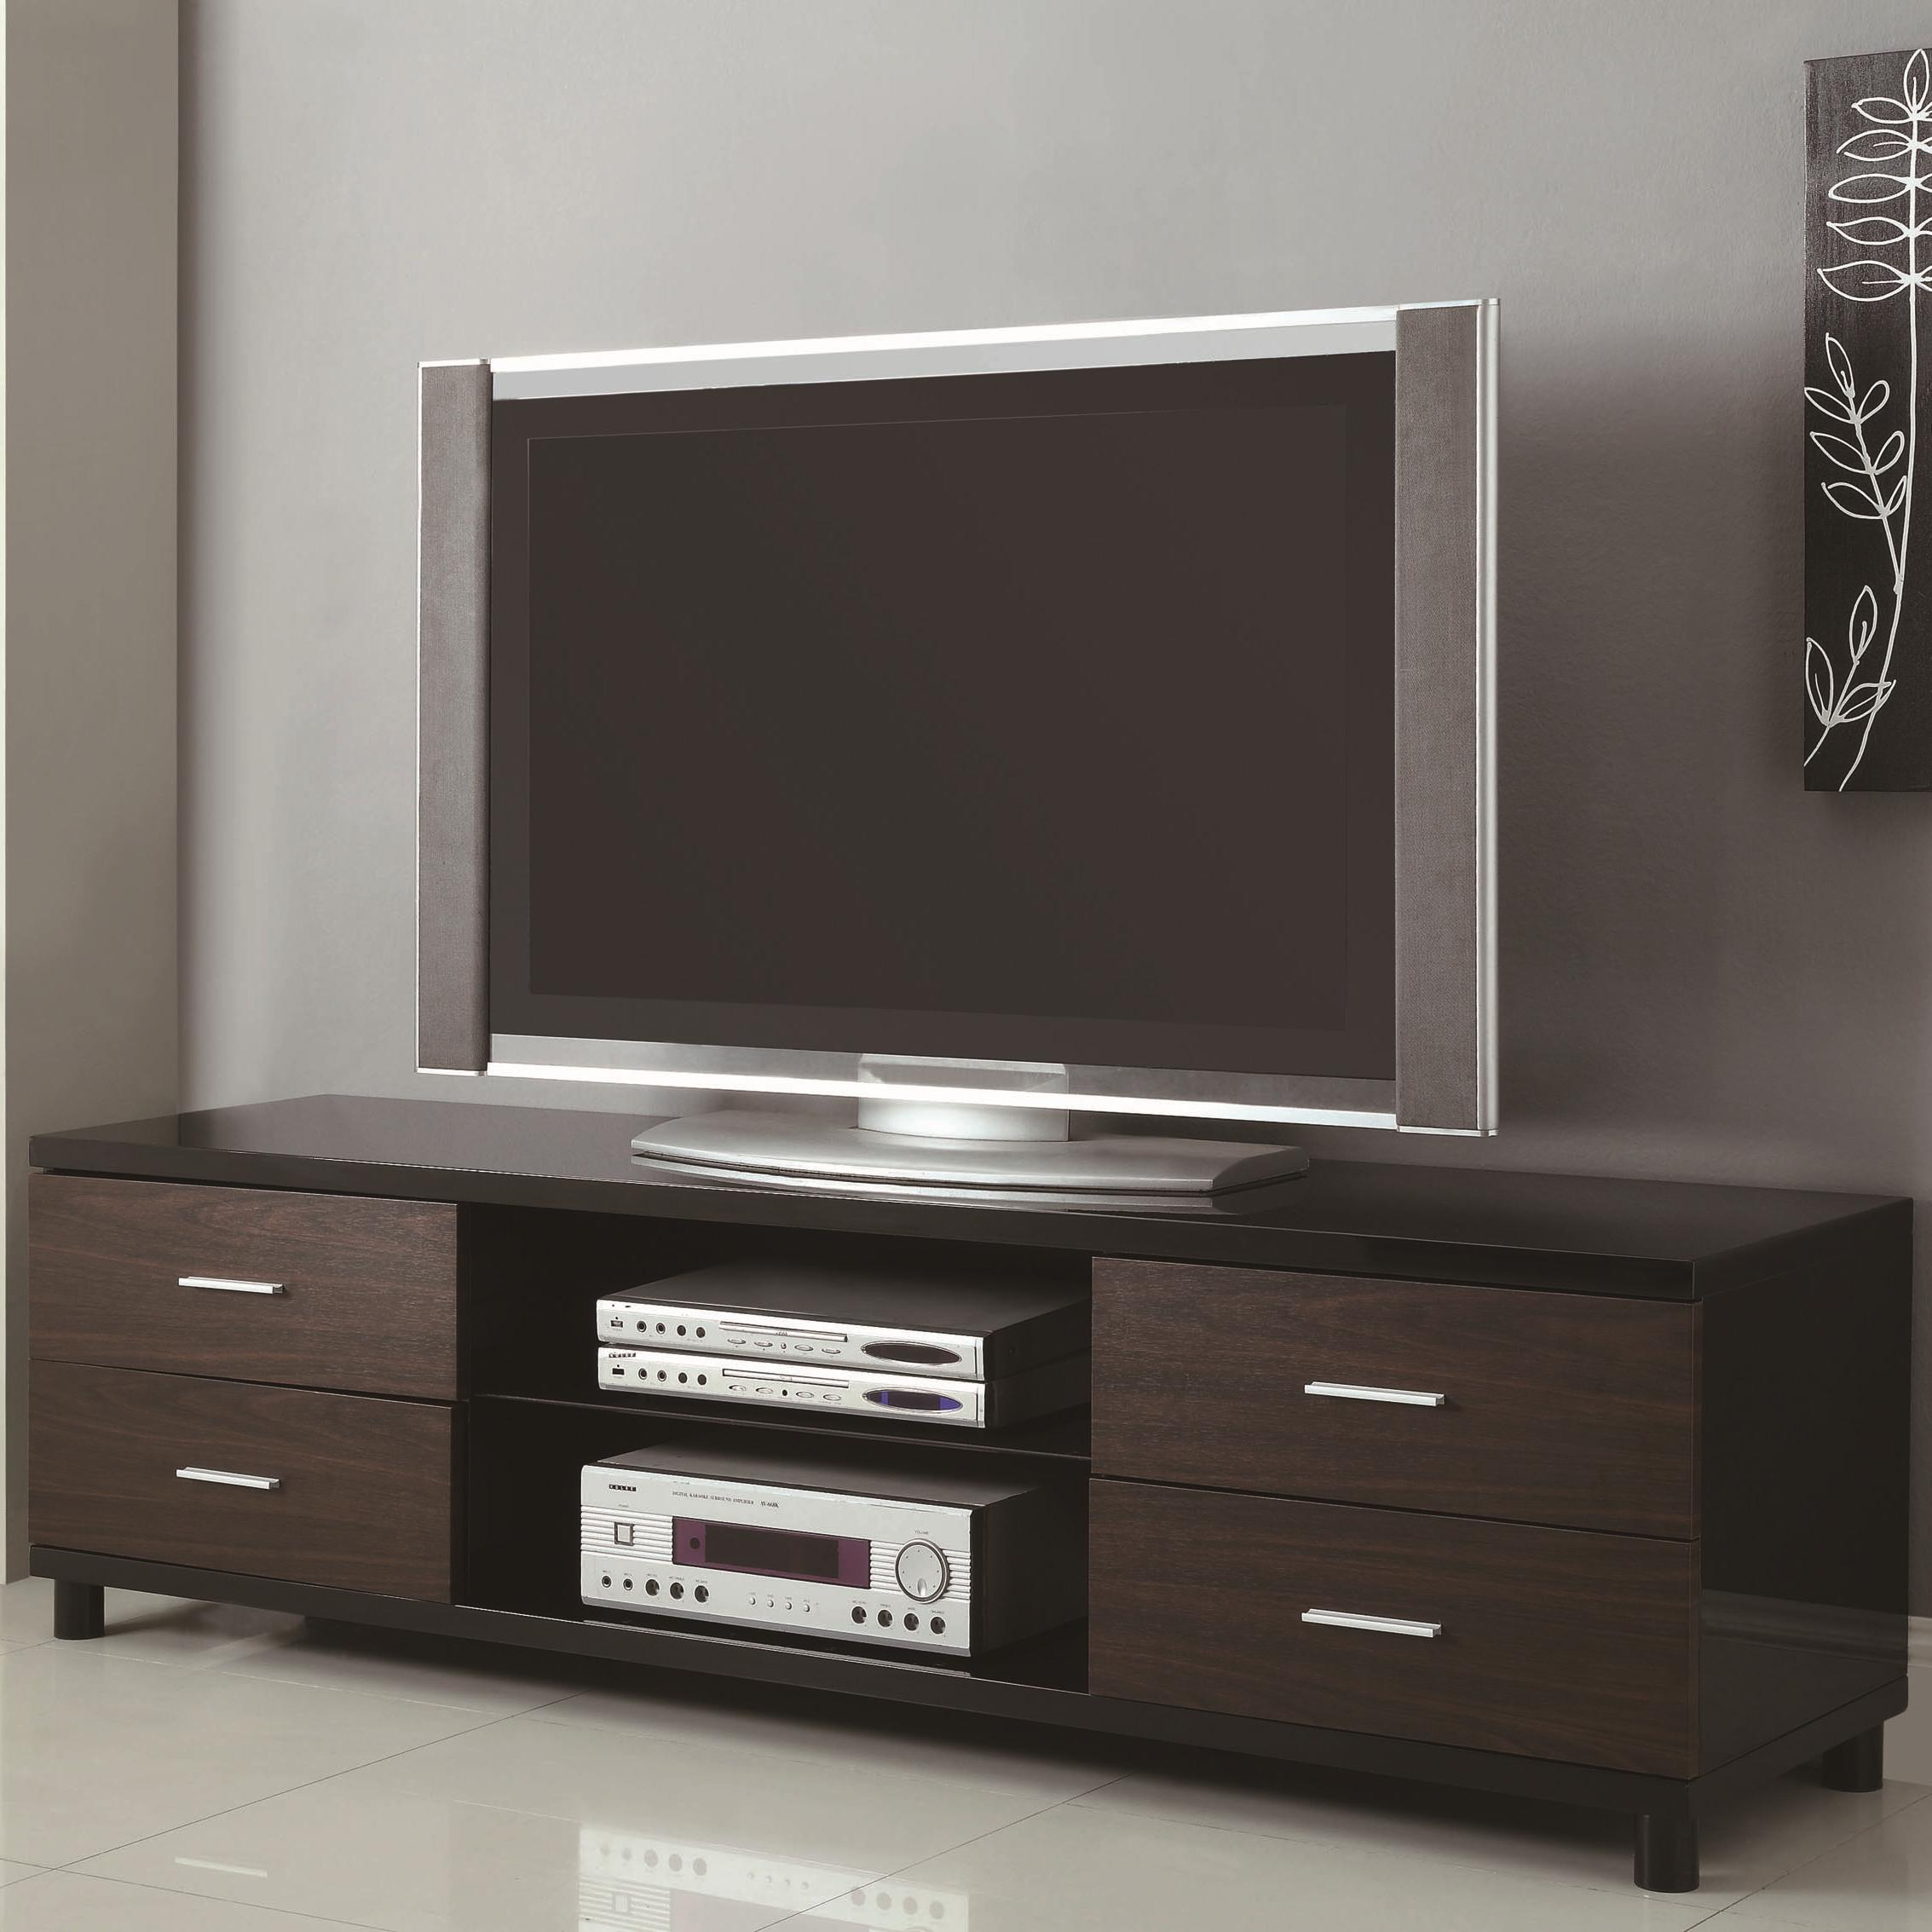 Coaster TV Stands TV Stand - Item Number: 700826